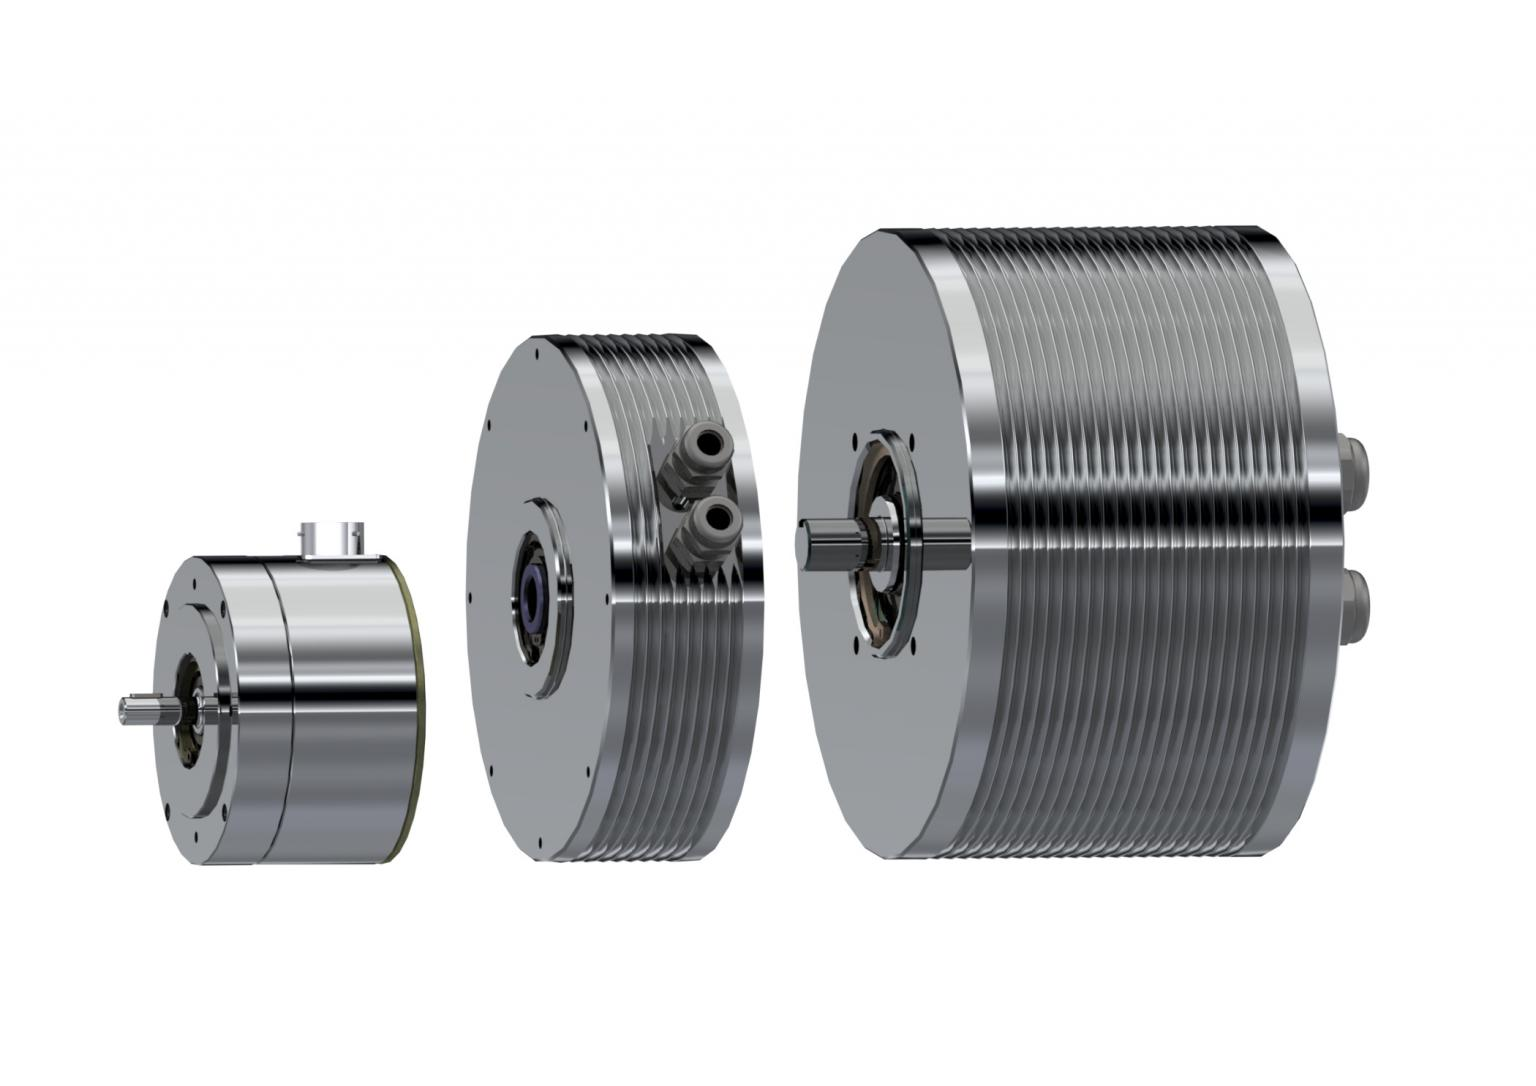 Printed Motor Works' IR range of compact, internal rotor, brushless DC motors has been expanded and upgraded